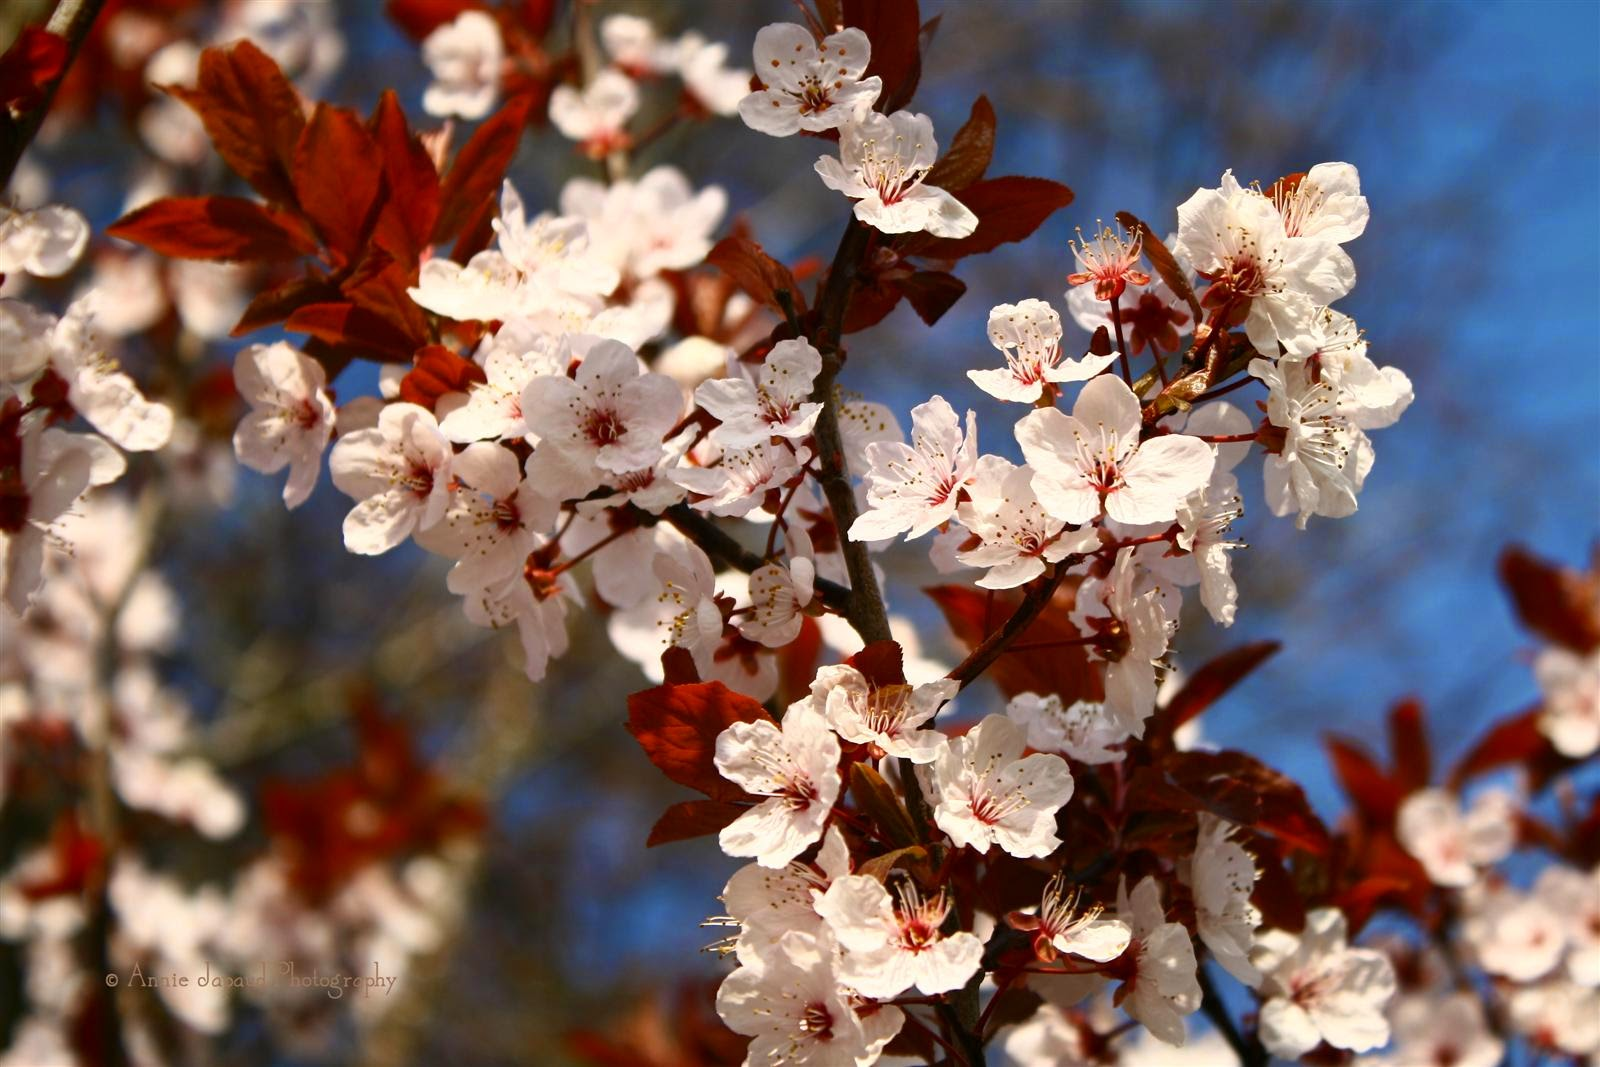 image of a branch covered in lovely spring blossoms